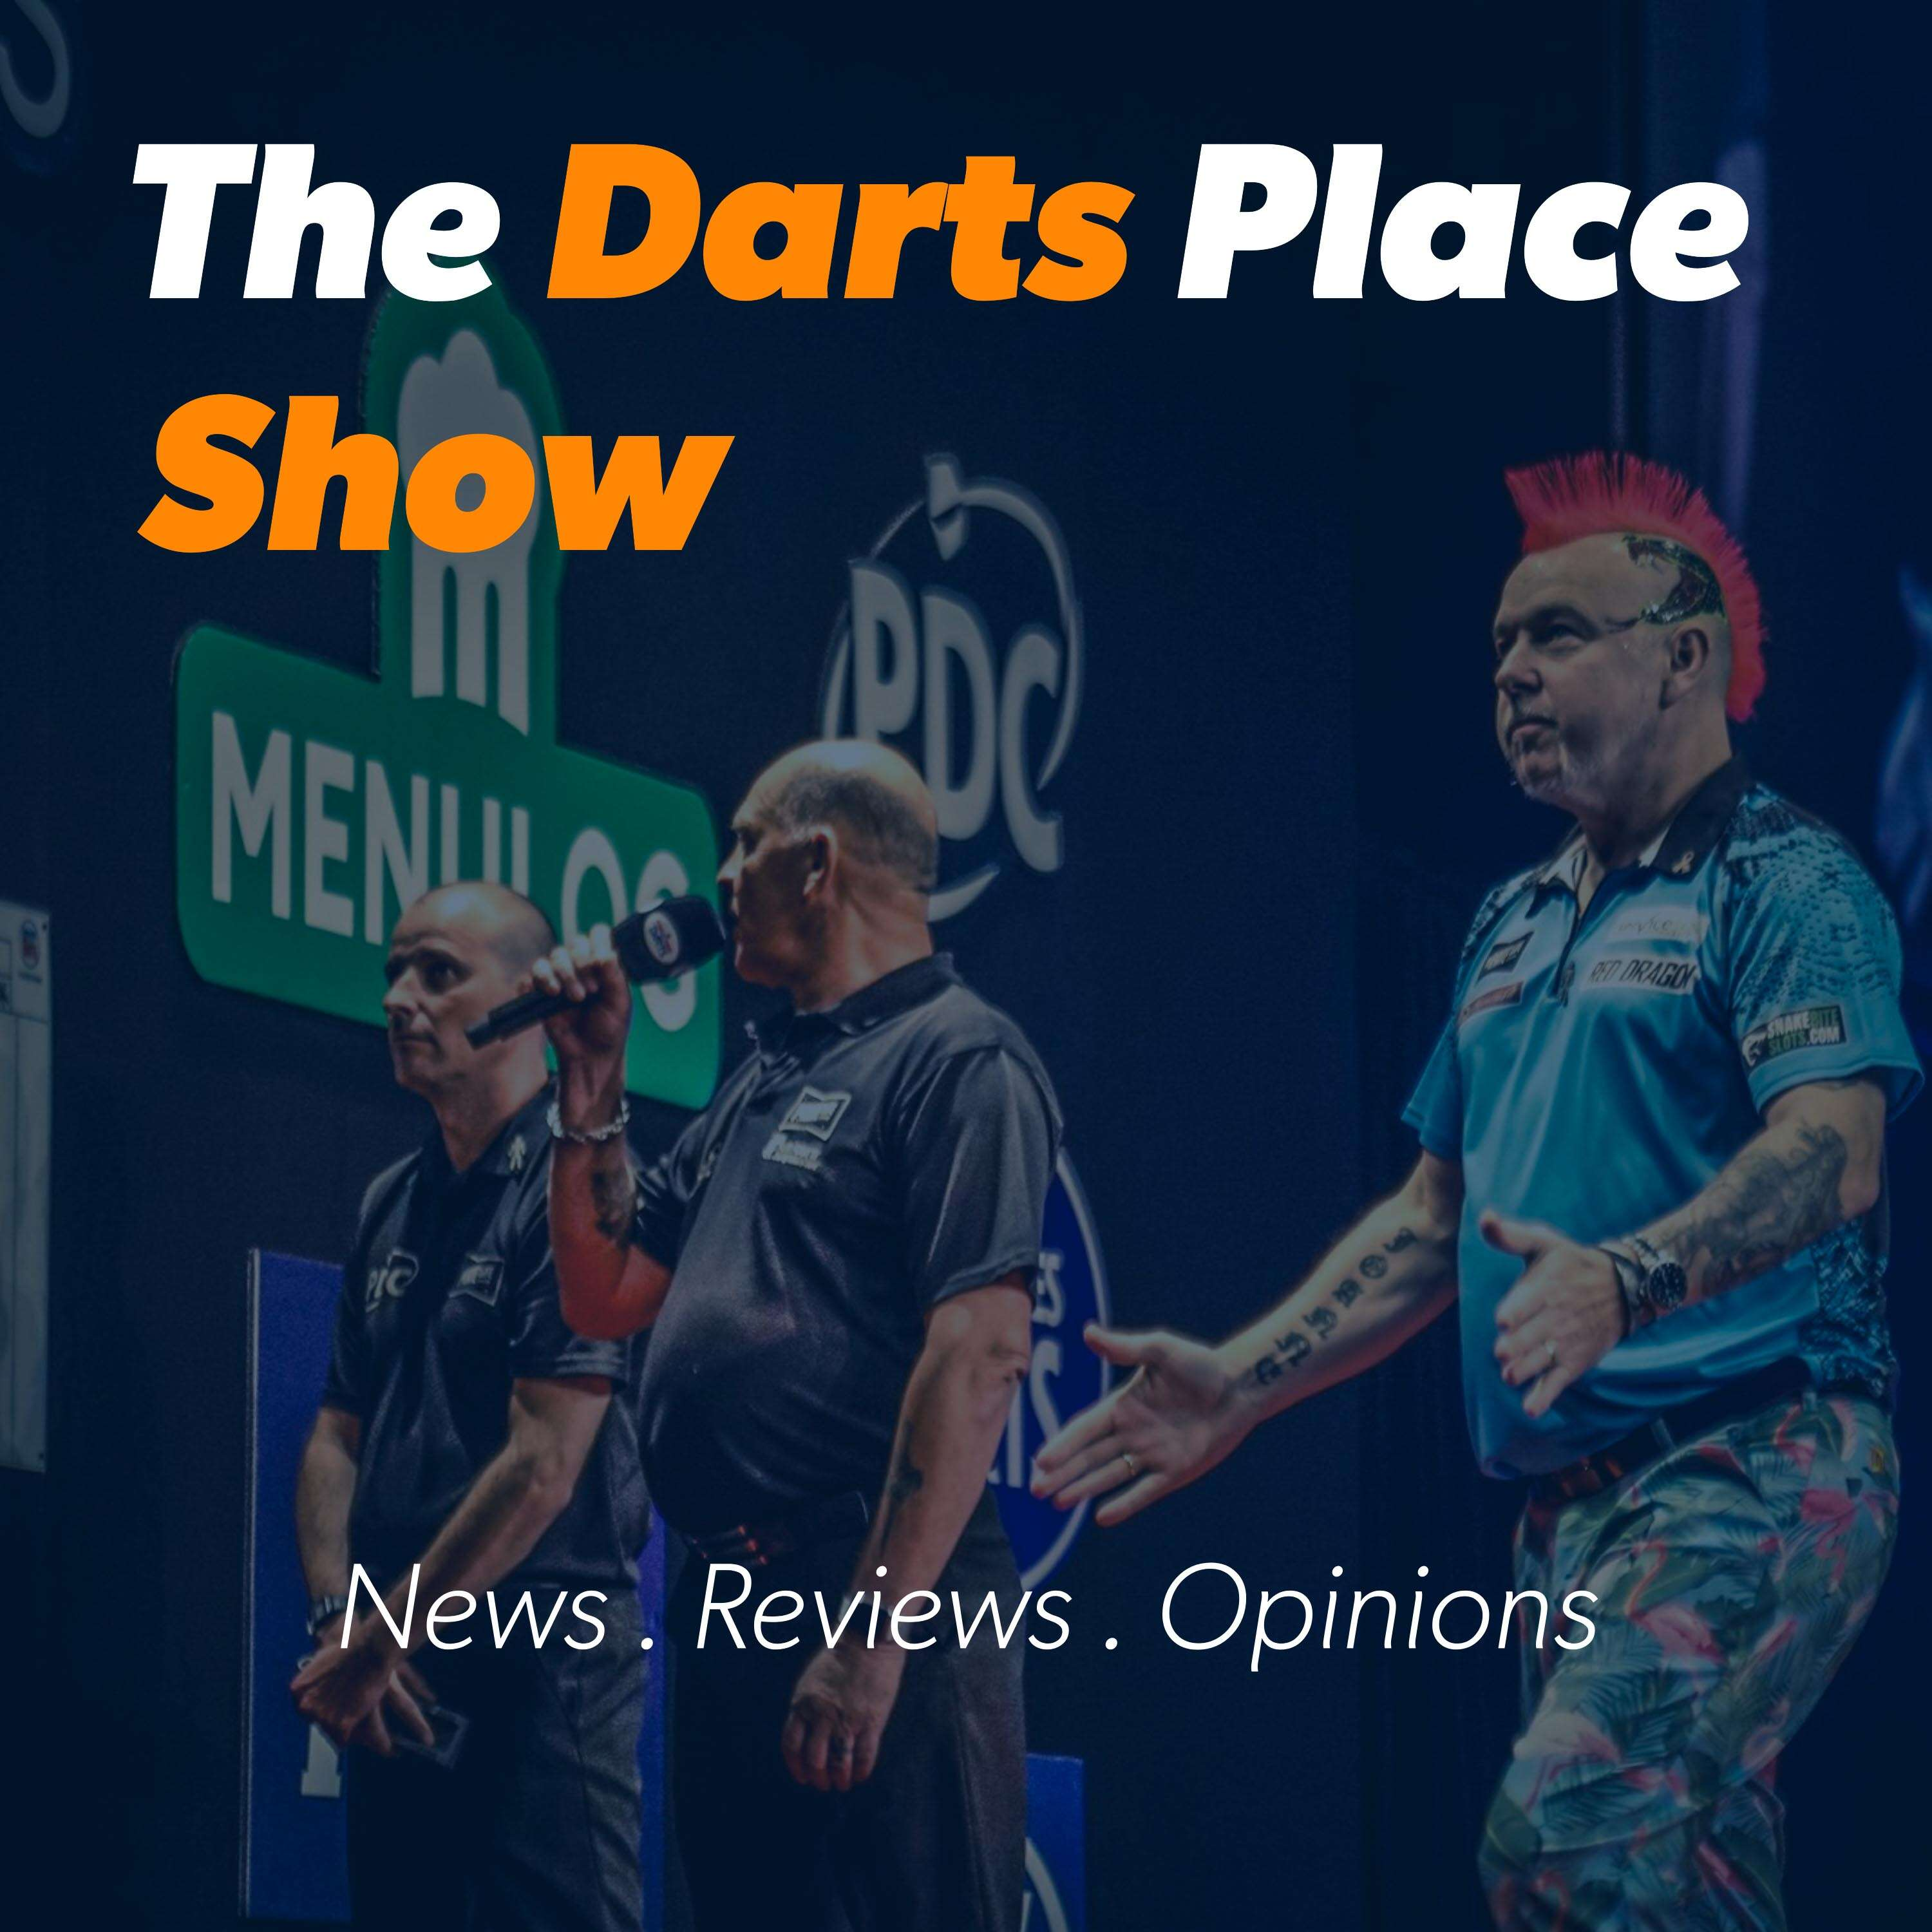 The Darts Place Show